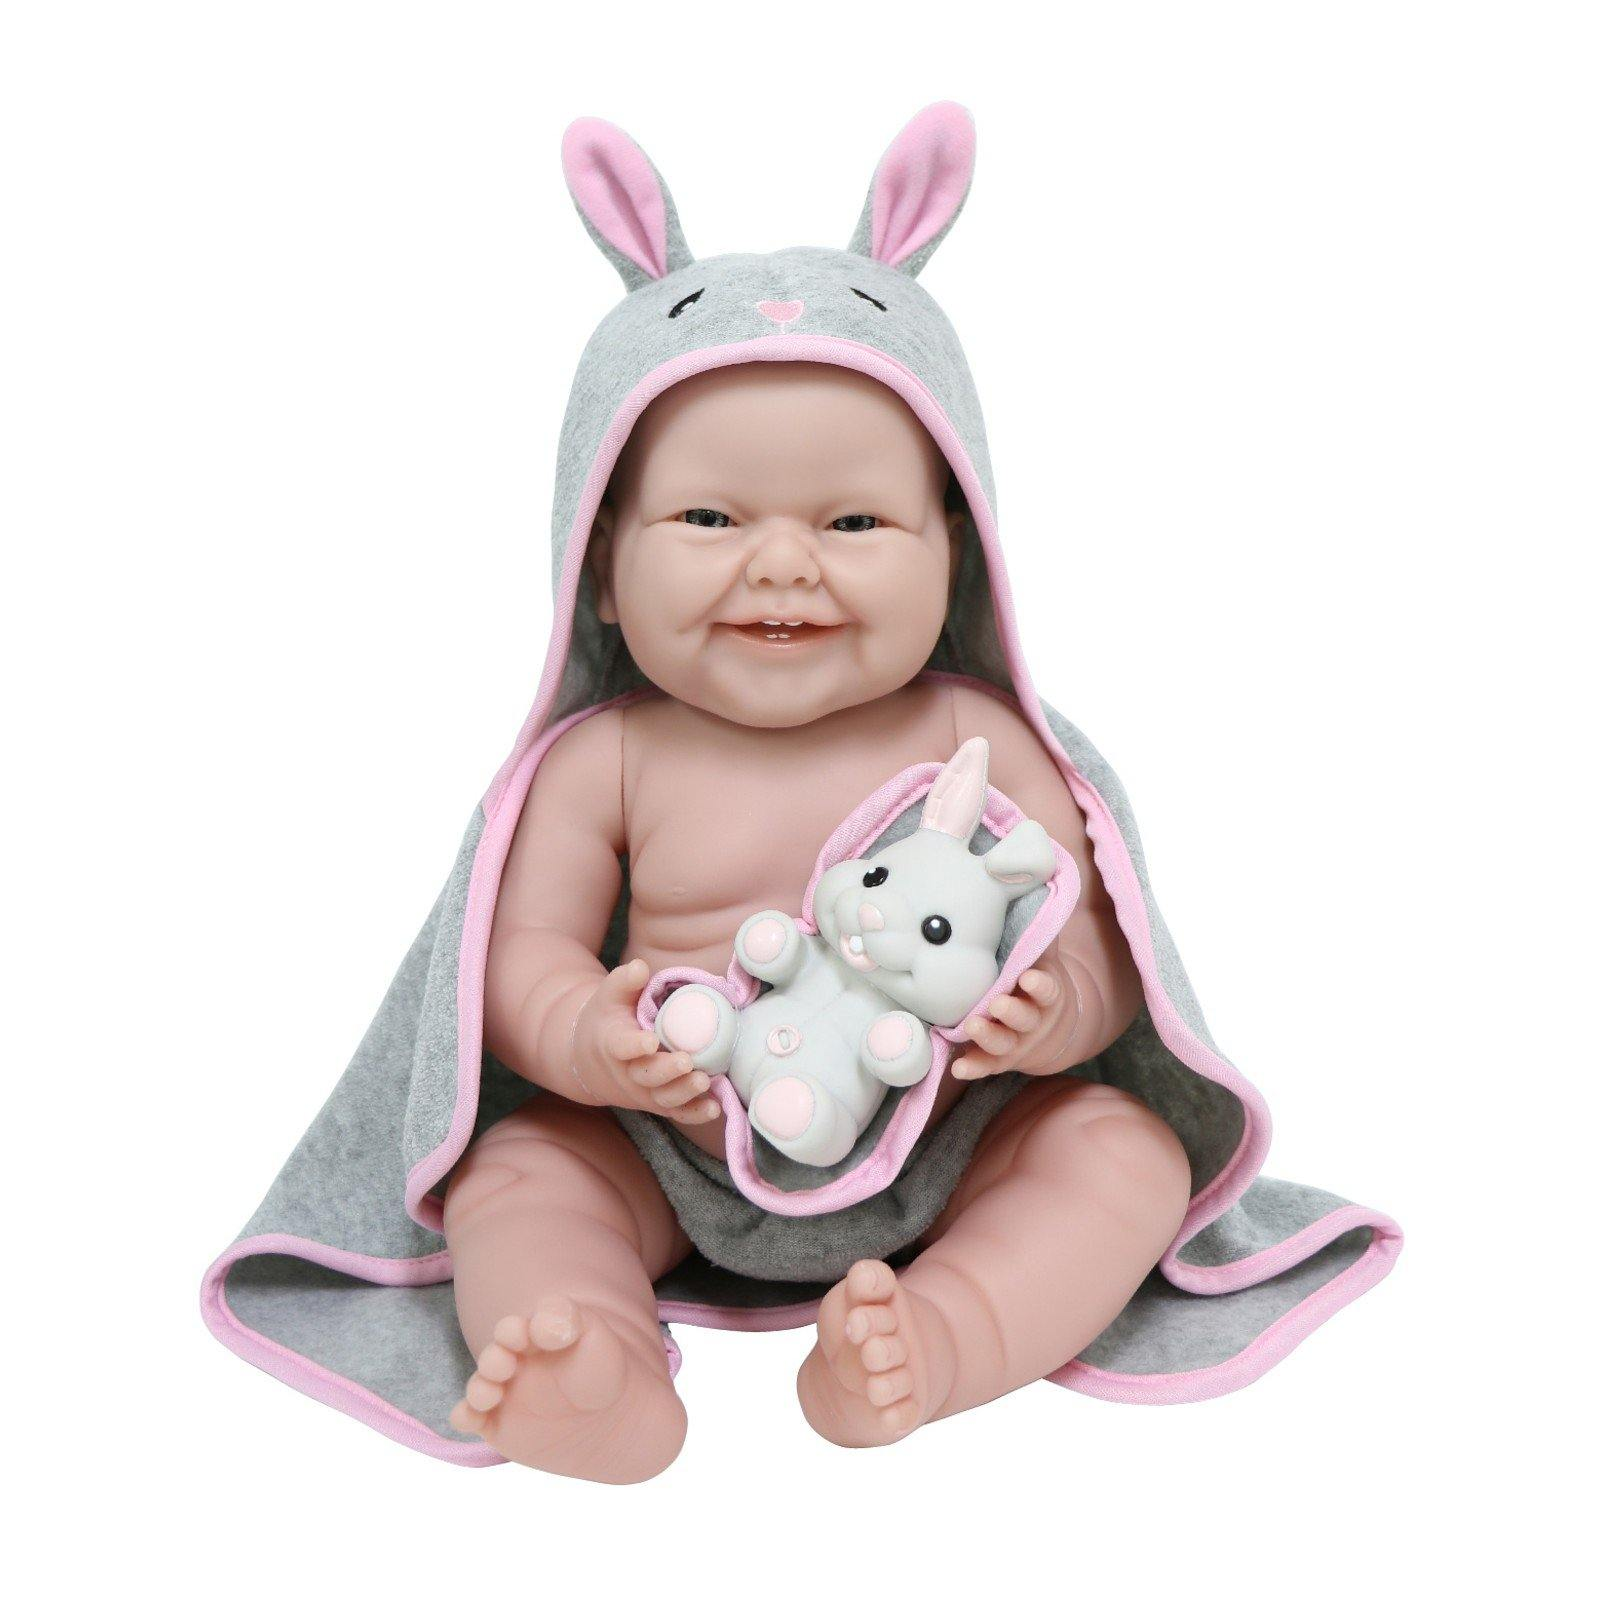 "JC Toys, La Newborn Baby Doll, All Vinyl Realistic 17"" Anatomically Correct Real Girl, with Hooded Rabbit Towel"